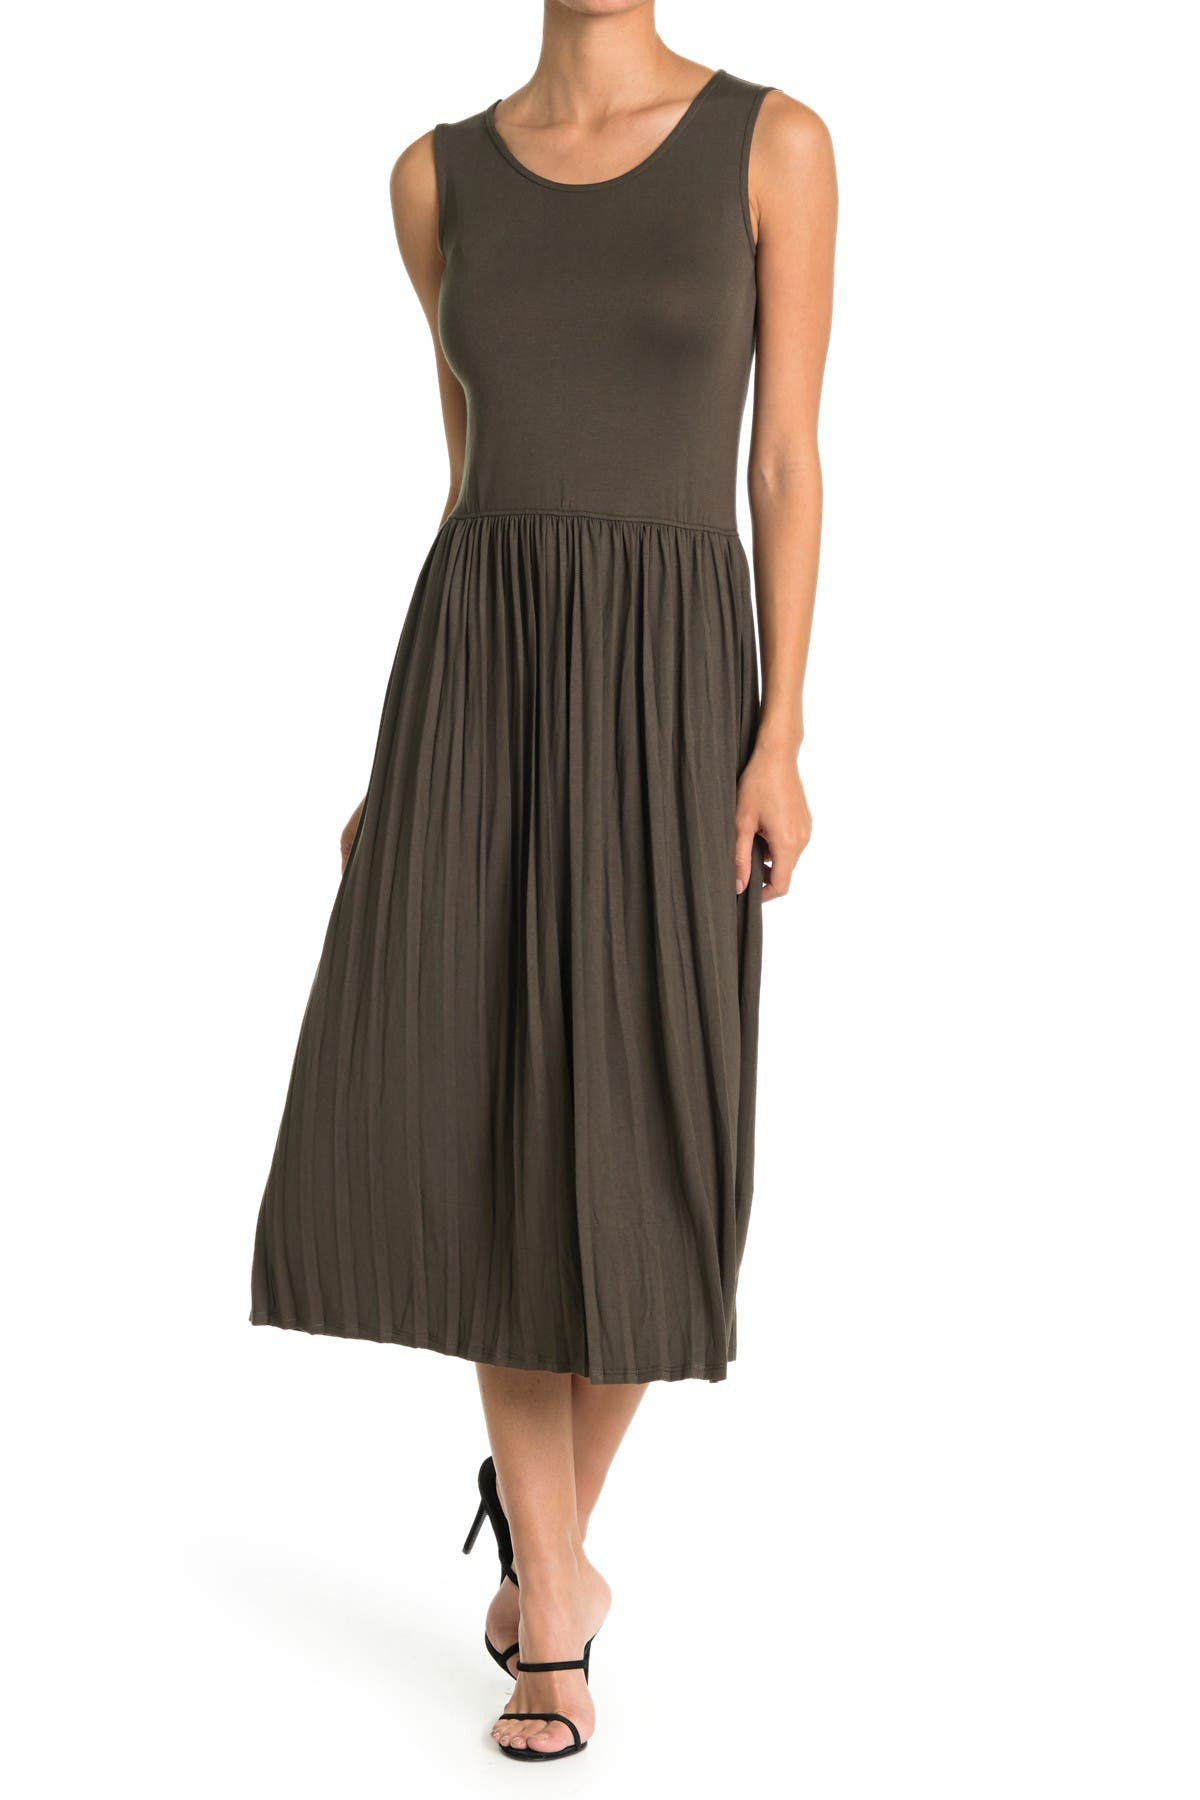 Image of Velvet Torch Pleated Sleeveless Dress